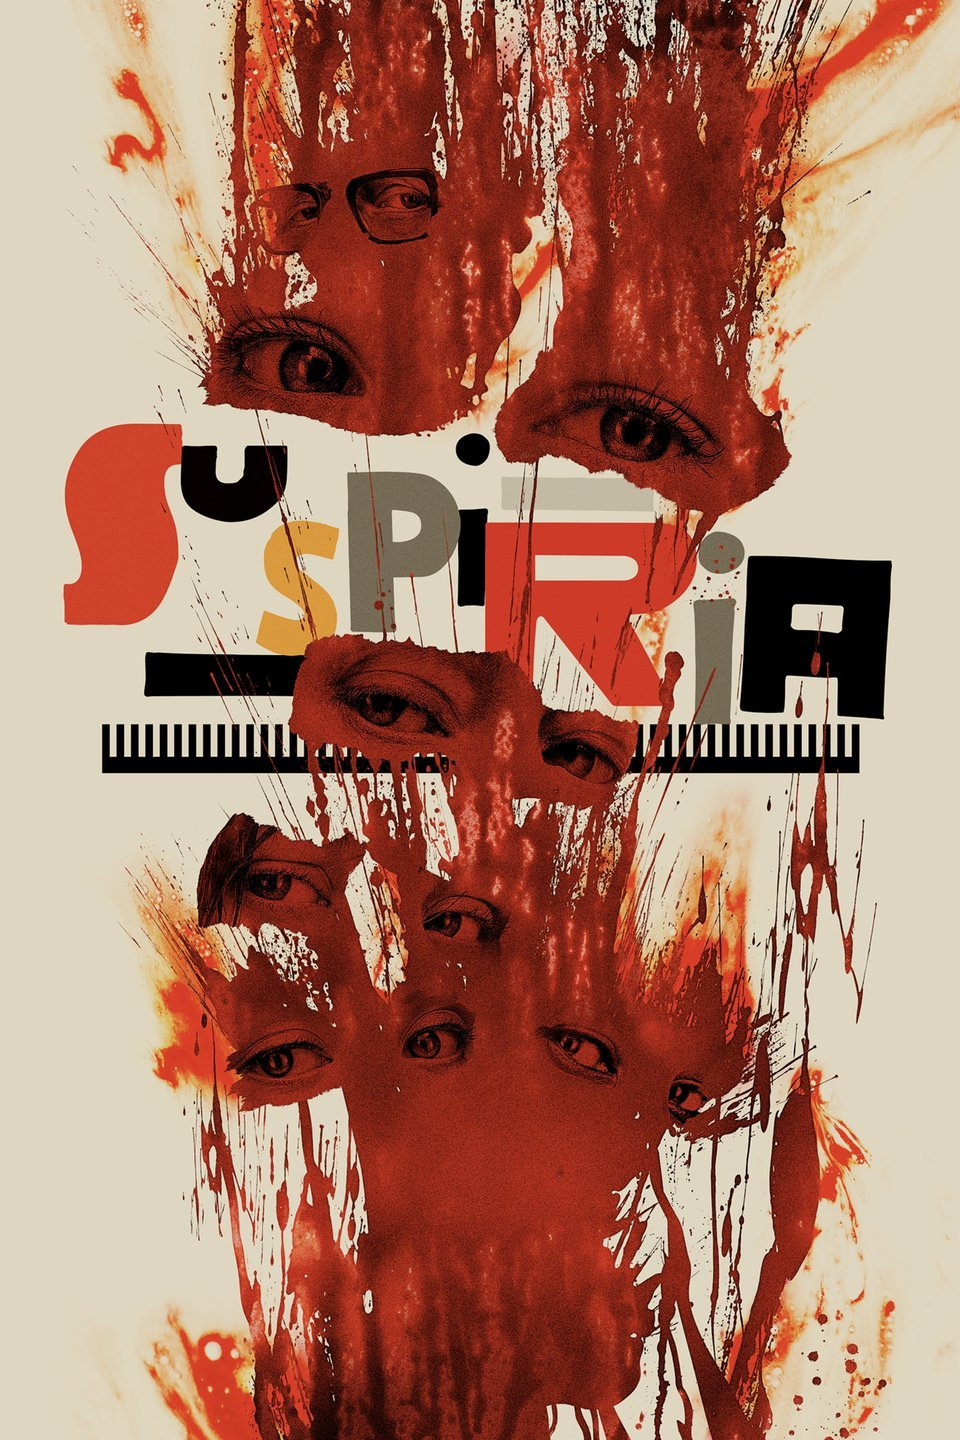 Suspiria (2018) - Directed by: Luca GuadagninoStarring: Dakota Johnson, Tilda Swinton, Mia Goth, Chloe Grace-MoretzRated: R for Disturbing Content Involving Ritualistic Violence, Bloody Images and Graphic Nudity, and For Some Language Including Sexual ReferencesRunning Time: 2 h 32 mTMM Score: 5 stars out of 5STRENGTHS: Directing, Writing, Story, Acting, Atmosphere, World BuildingWEAKNESSES: Ending Might Not Work for Everyone